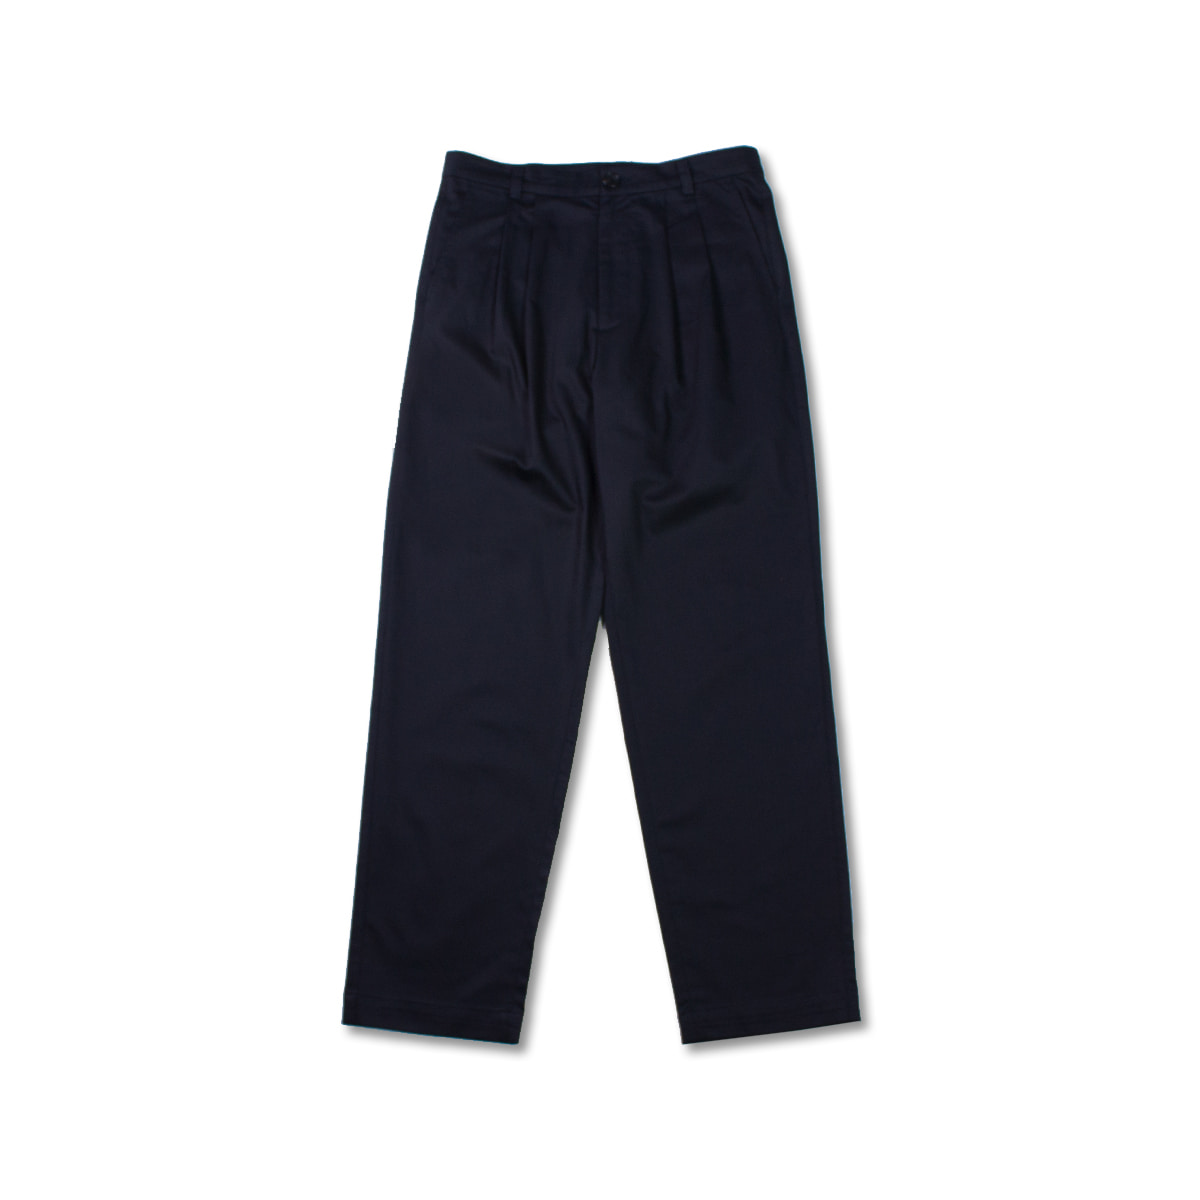 [8DIVISION] PLEATED NAVY TROUSERS 'NAVY'